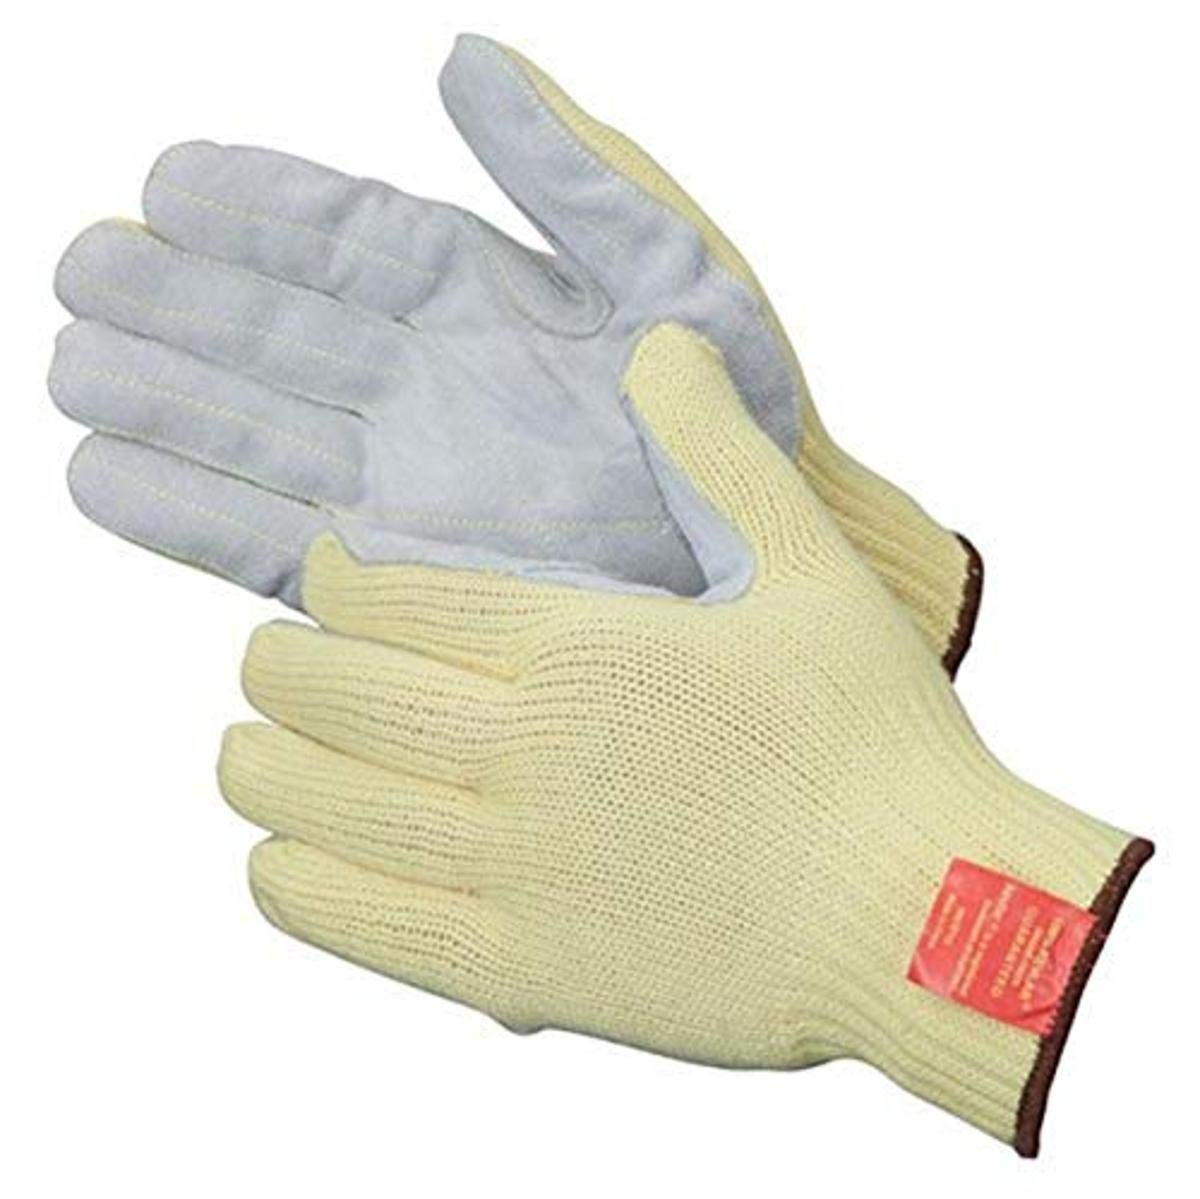 Liberty 4883 Kevlar Knit Sewn Glove with Leather Palm, Cut Resistant, Small (Pack of 12)